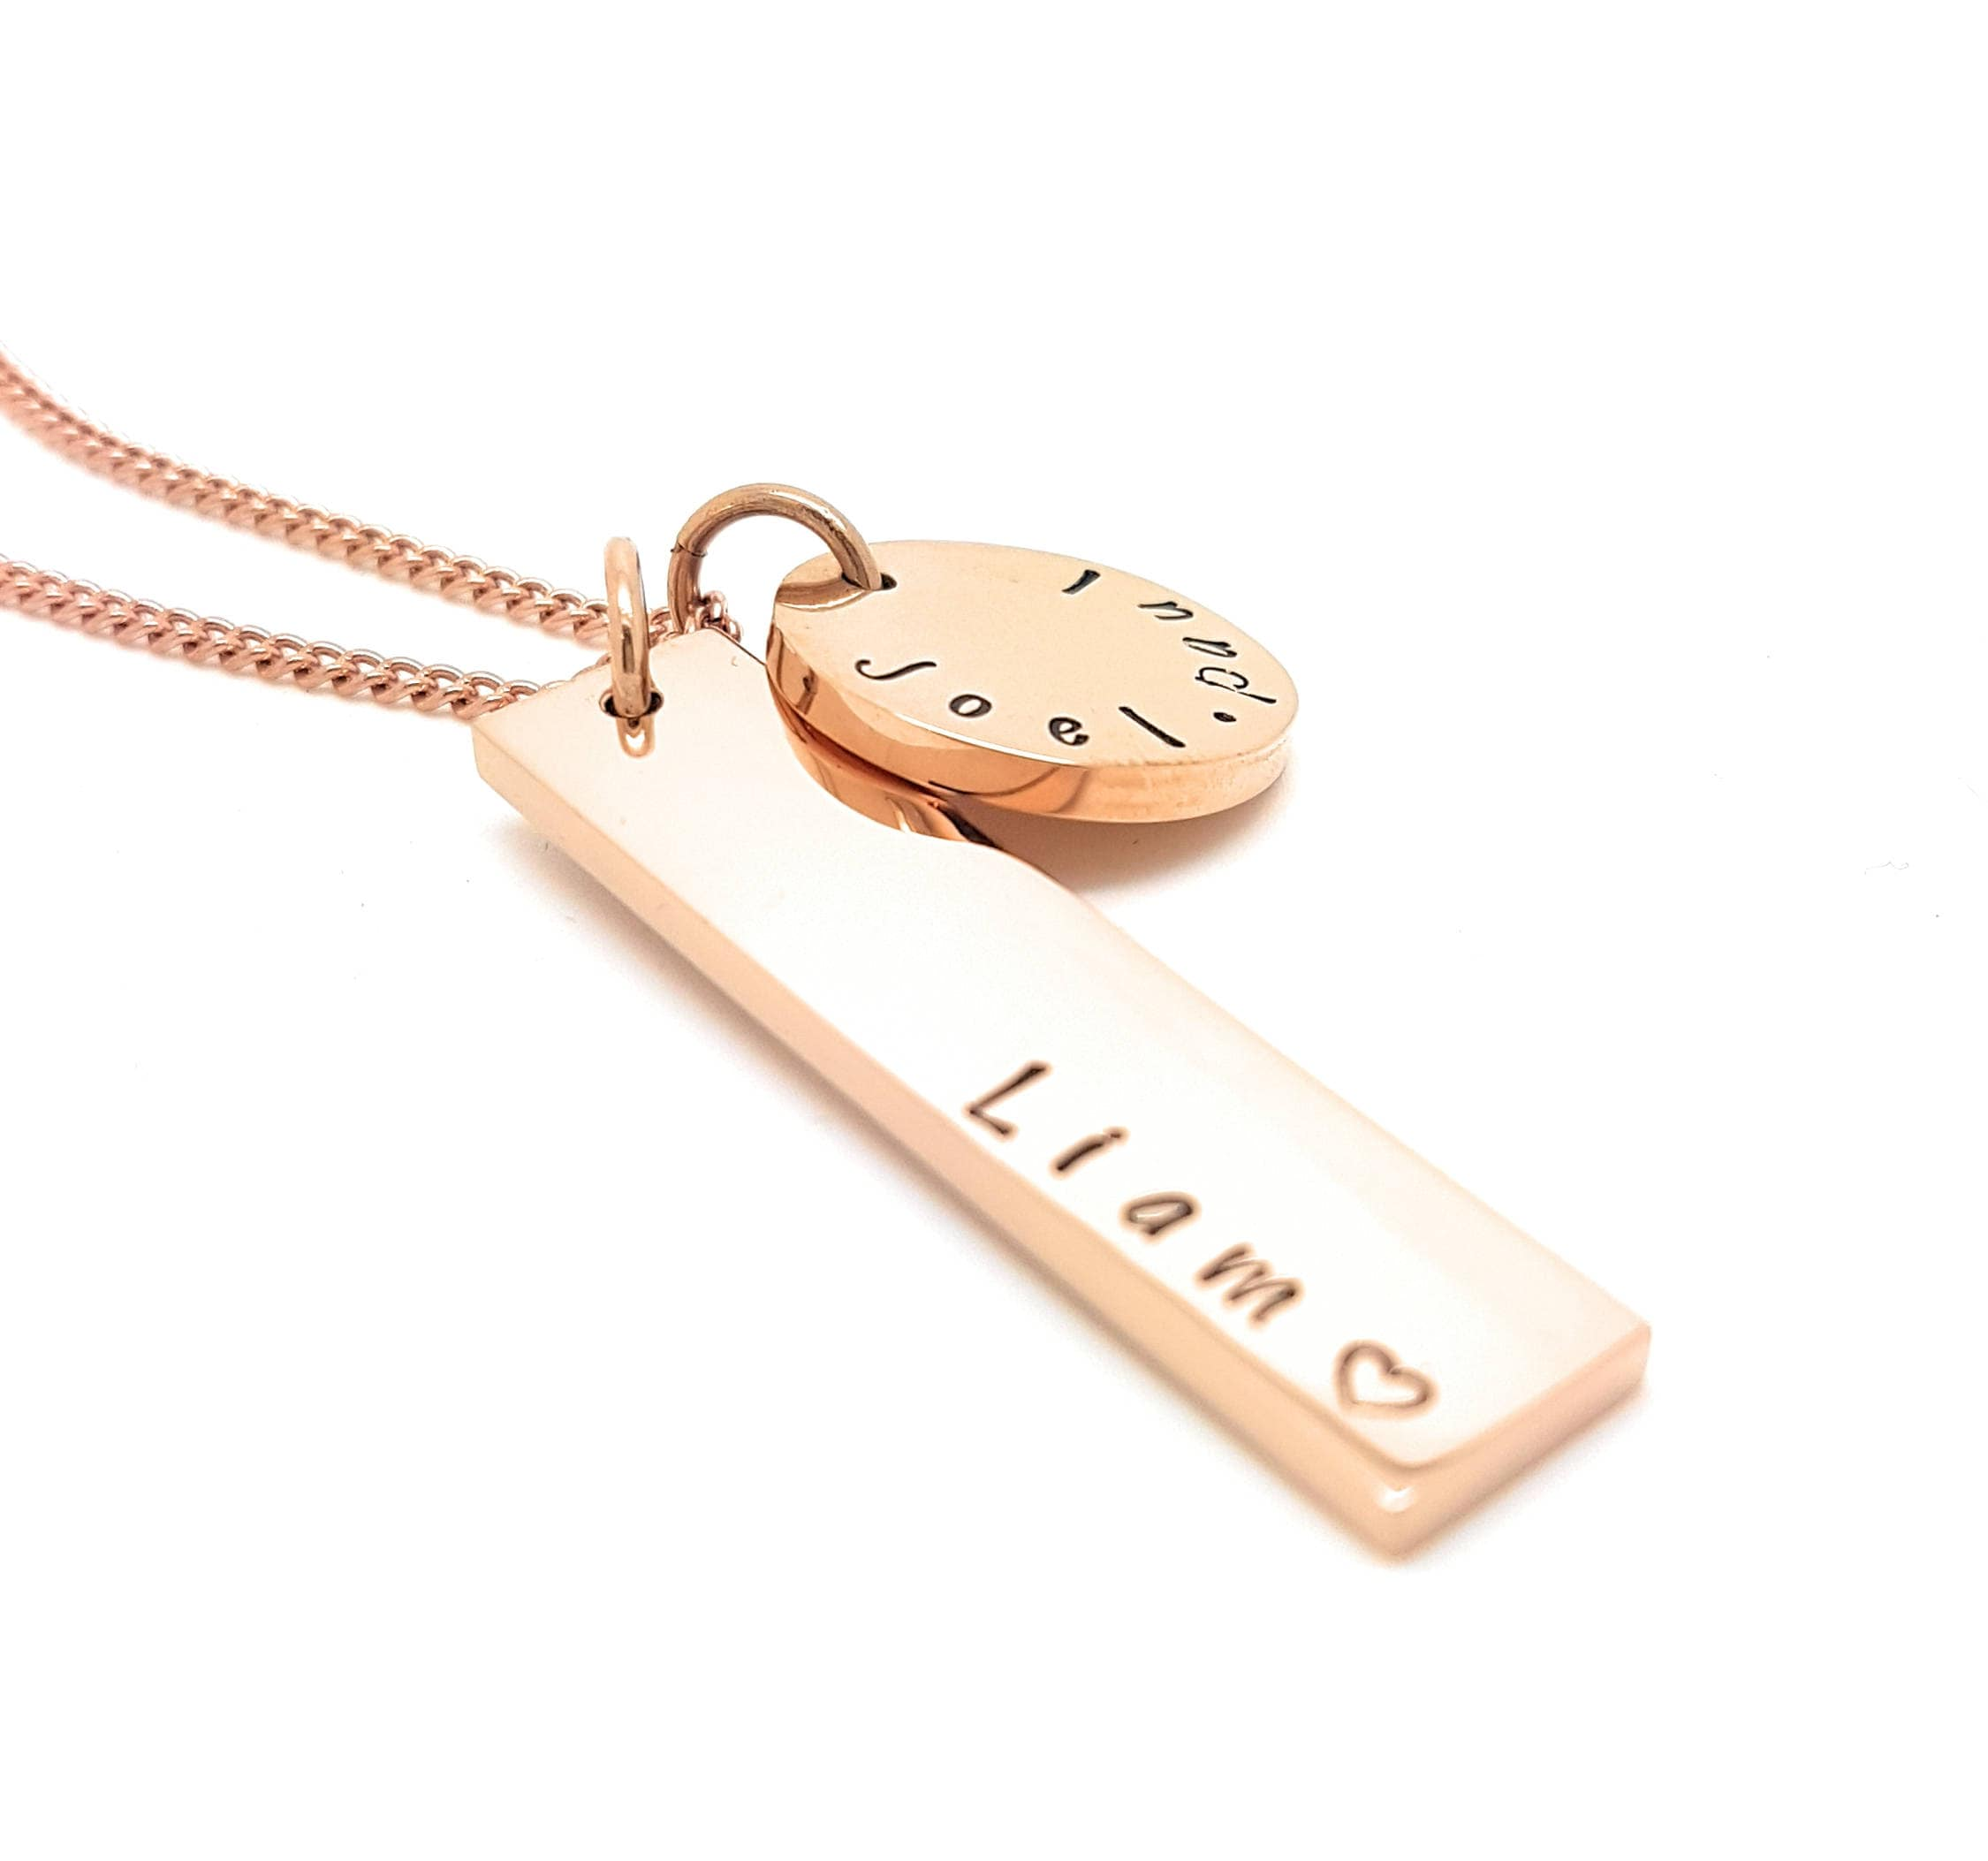 vines personalized necklace pendant hangul name korean swirly with pin gold